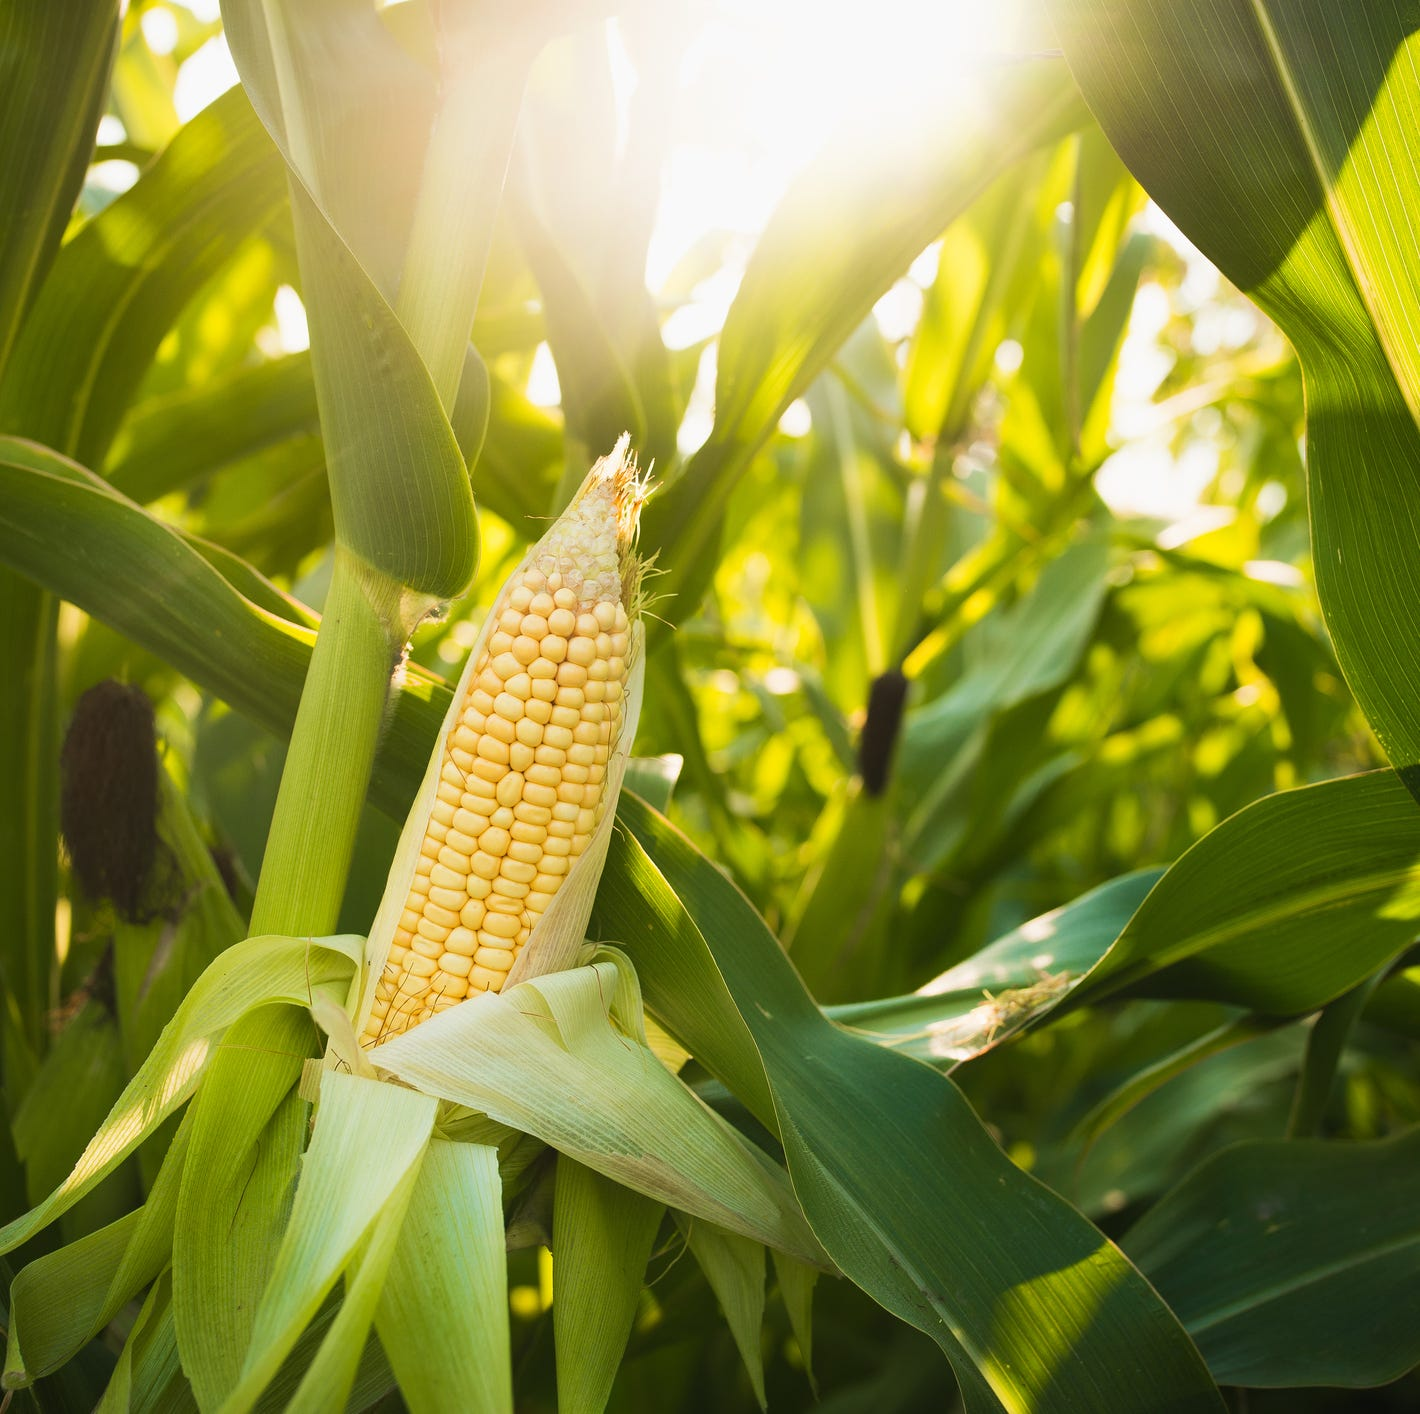 Trade war concerns, low commodity prices weaken producer outlook